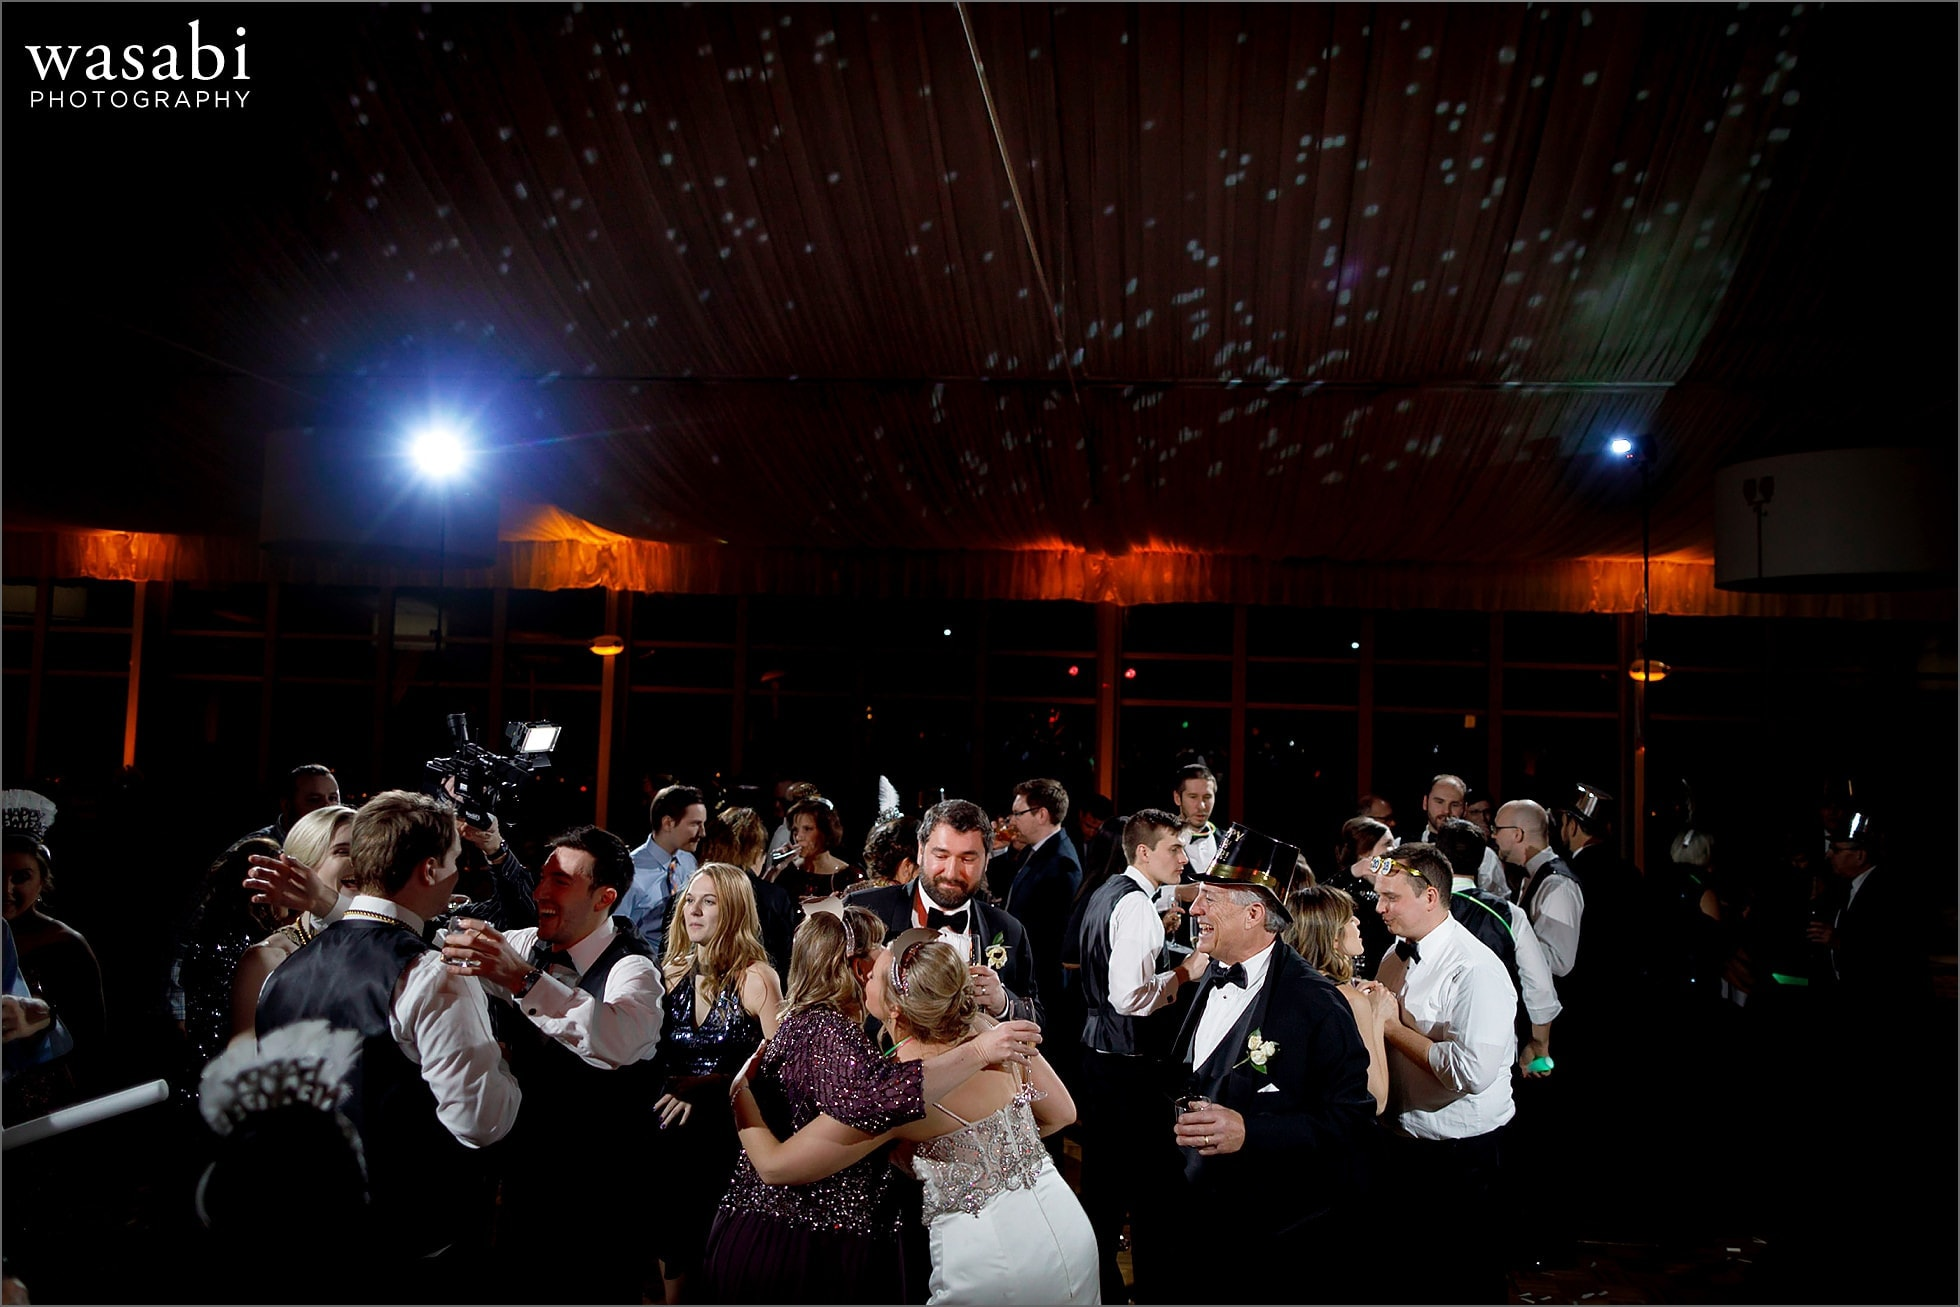 wedding guests dancing during New Years Eve wedding reception at Chicago Marriott Lincolnshire Resort with fireworks displayed on ceiling